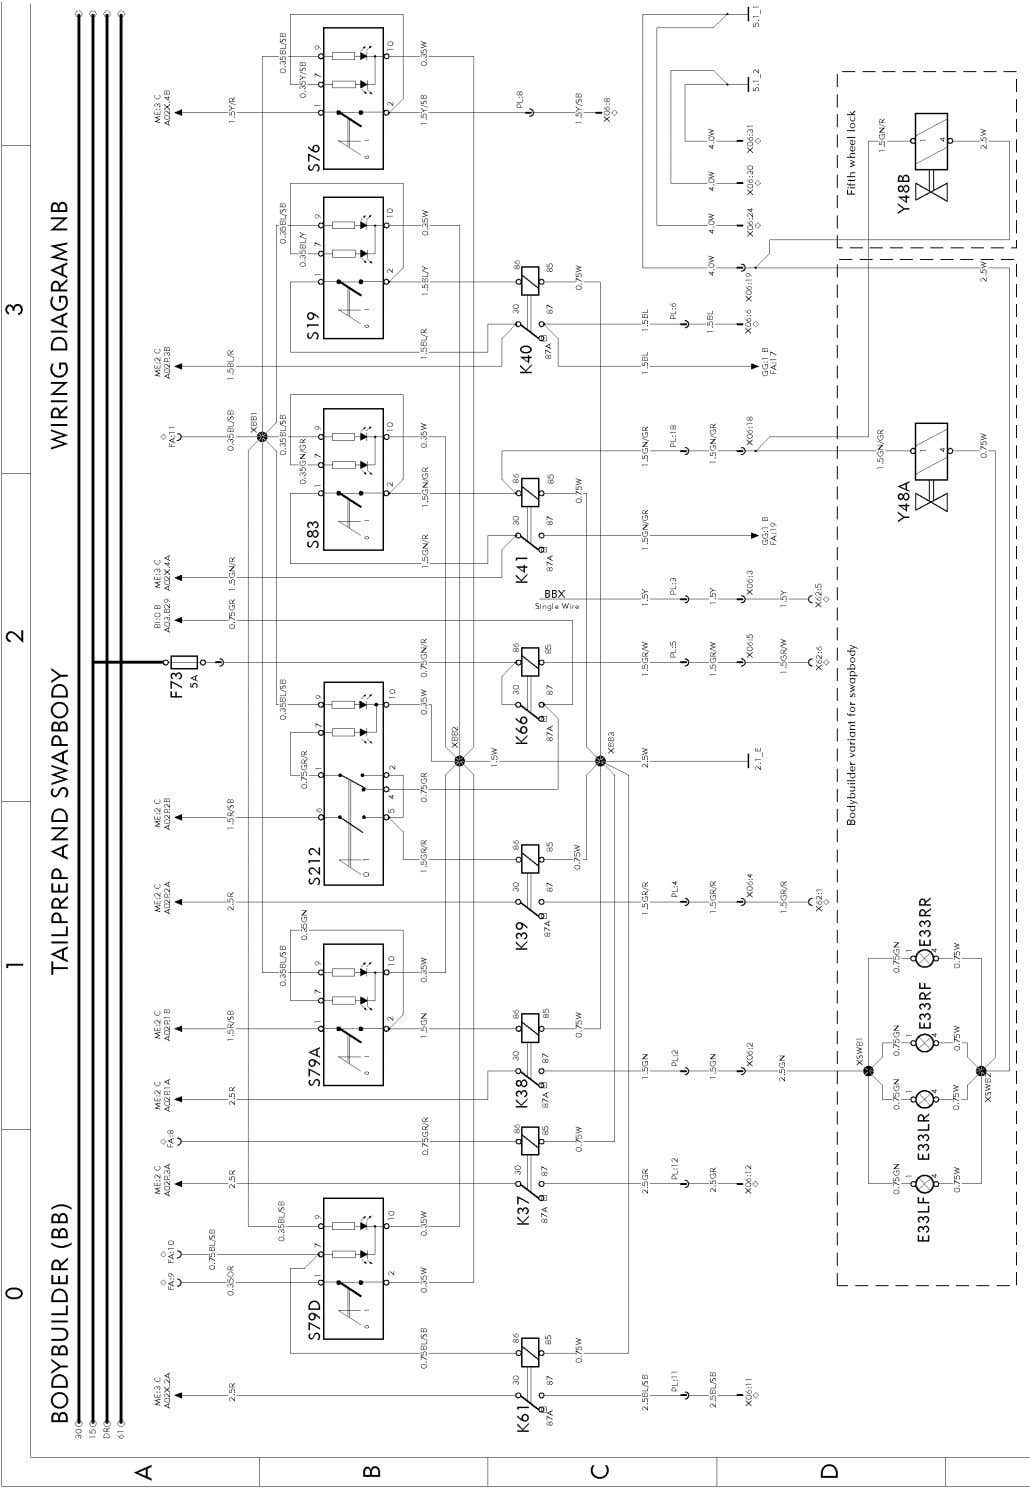 T3021489 Wiring diagram Page 111 (298)